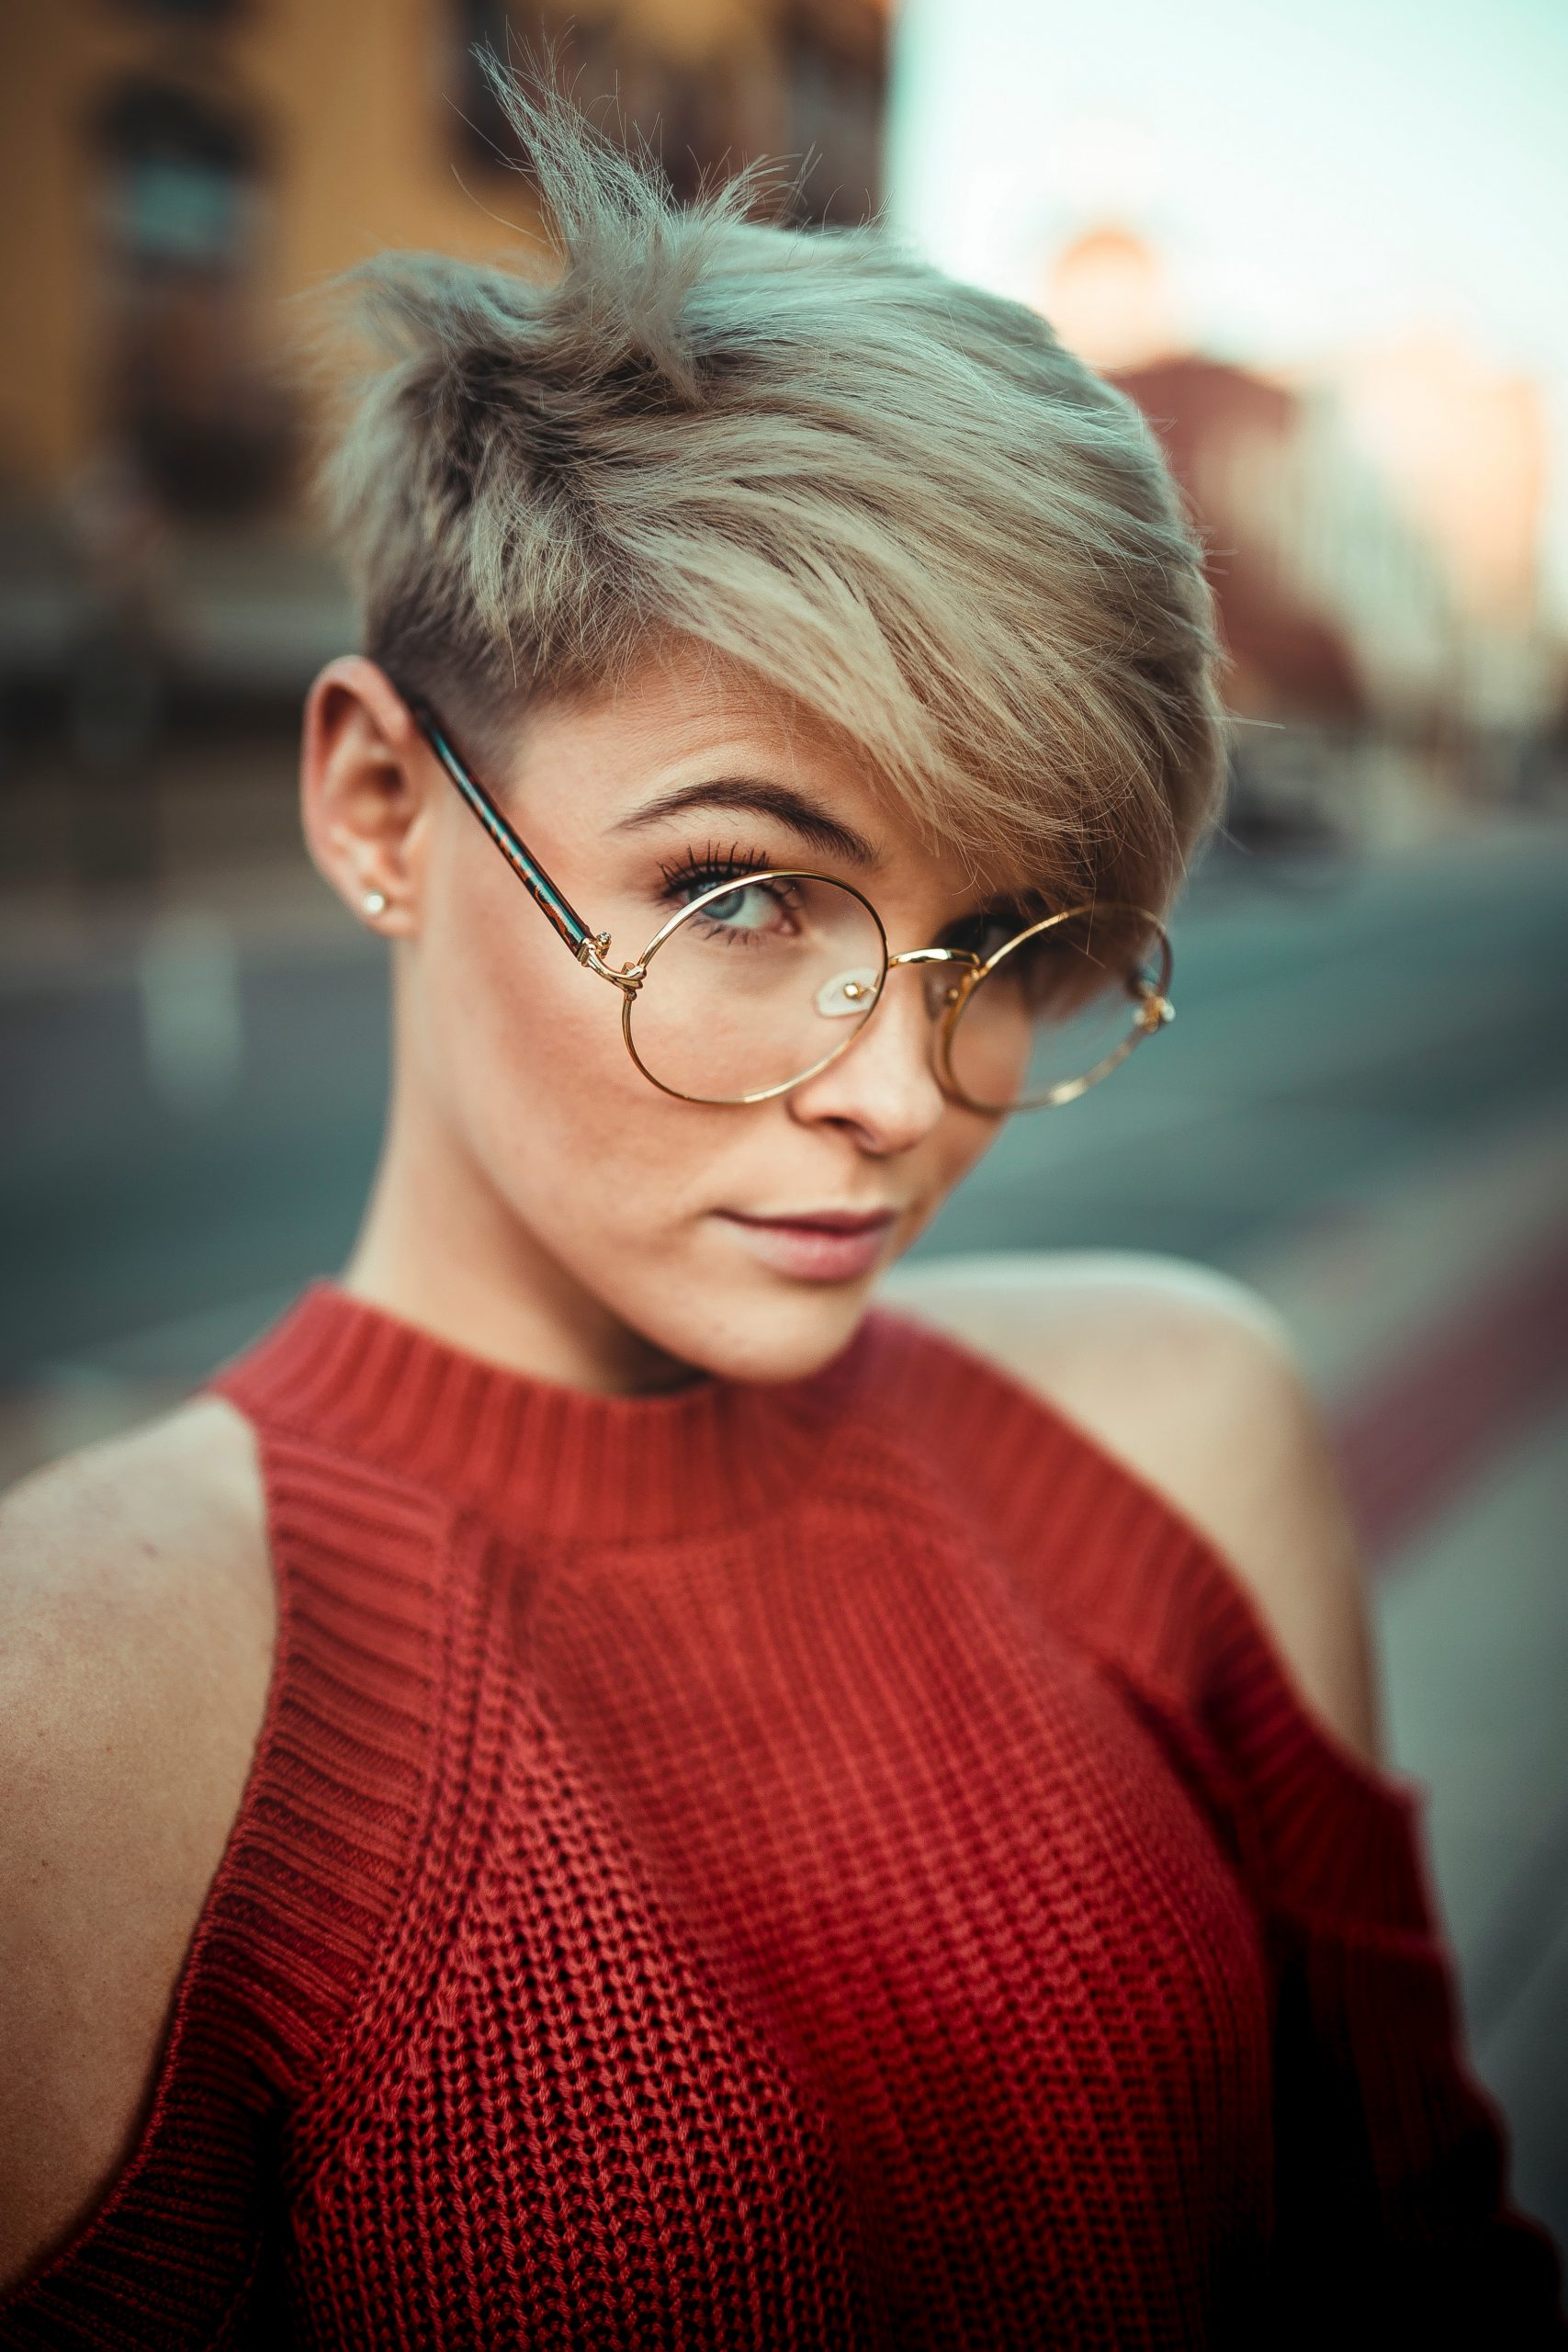 Short Haircuts For Fine Hair And Round Faces Small Face Haircut